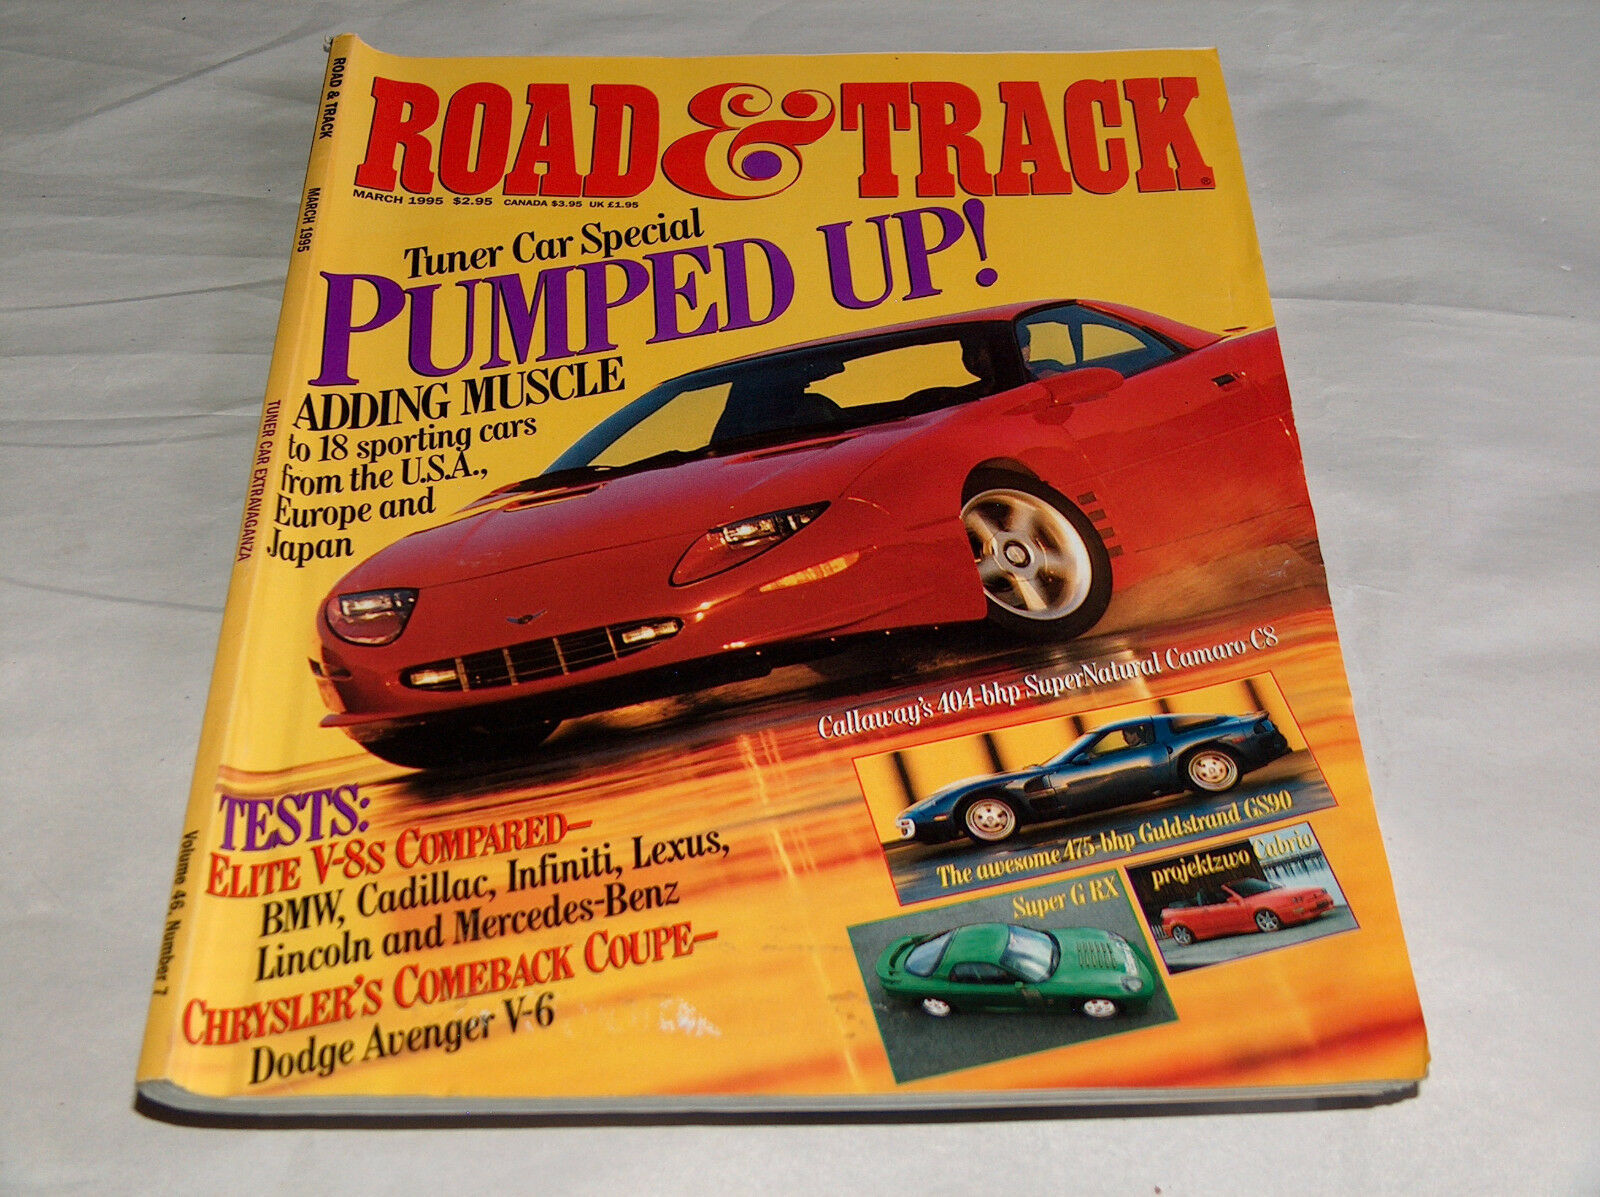 Primary image for Road & Track 1995 Car Truck Magazine Callaway's 404-bhp Super Natural Camaro C8